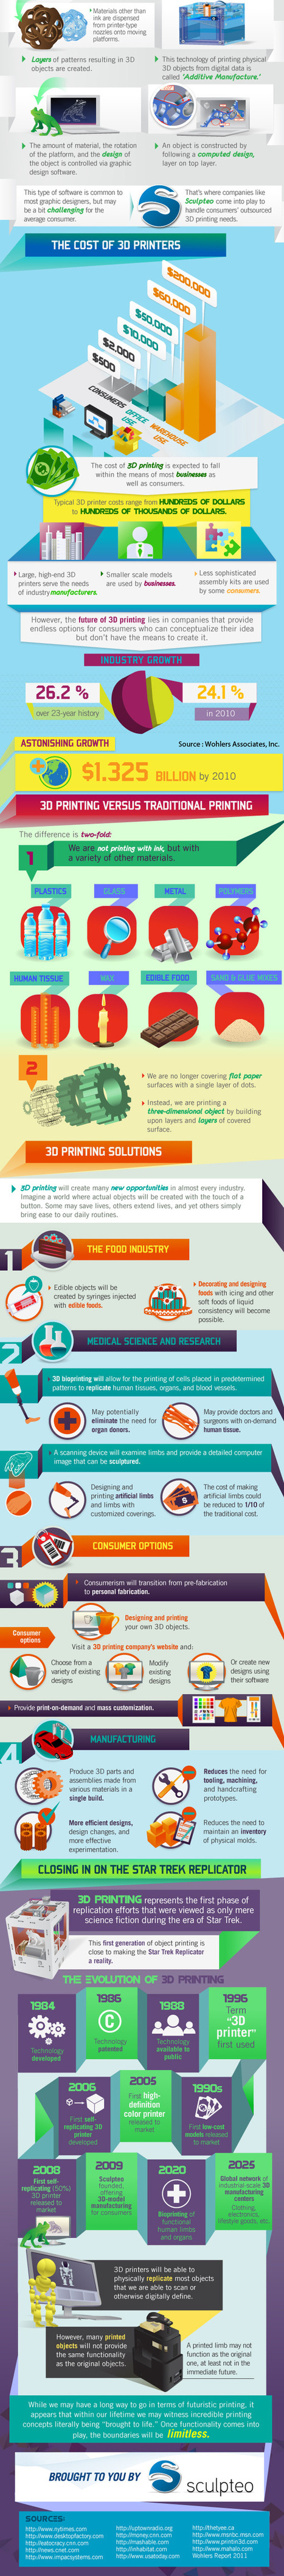 Why 3D Printing is the Future {Infographic} - Best Infographics | Technologie et éducation | Scoop.it